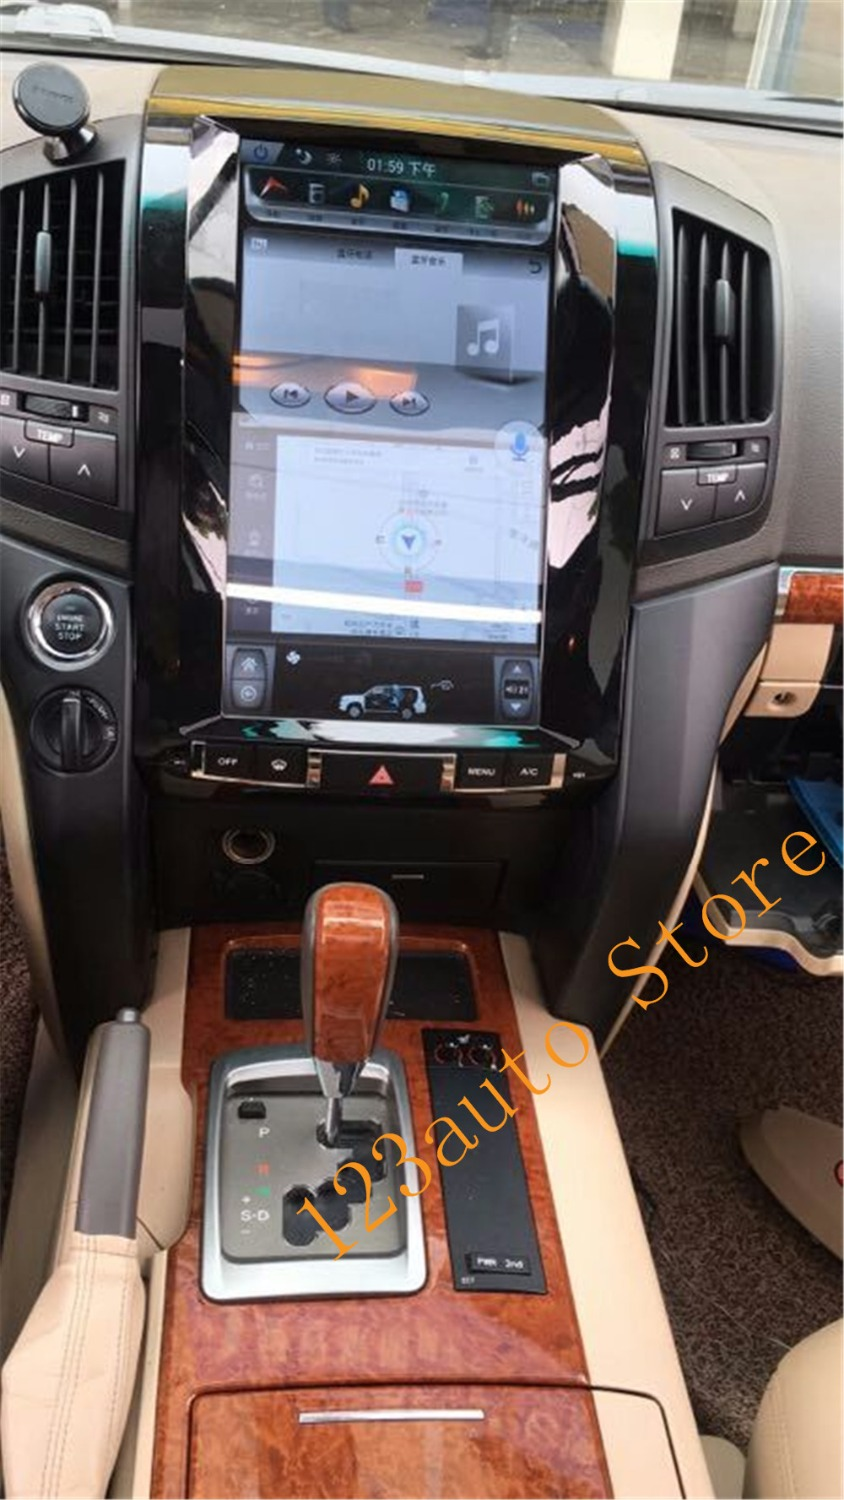 Autocardvdgps 13.6 inch vertical tesla style android 7.1 auto car dvd gps player navi for  toyota land cruiser lc200 2008-2015 with dvd functio